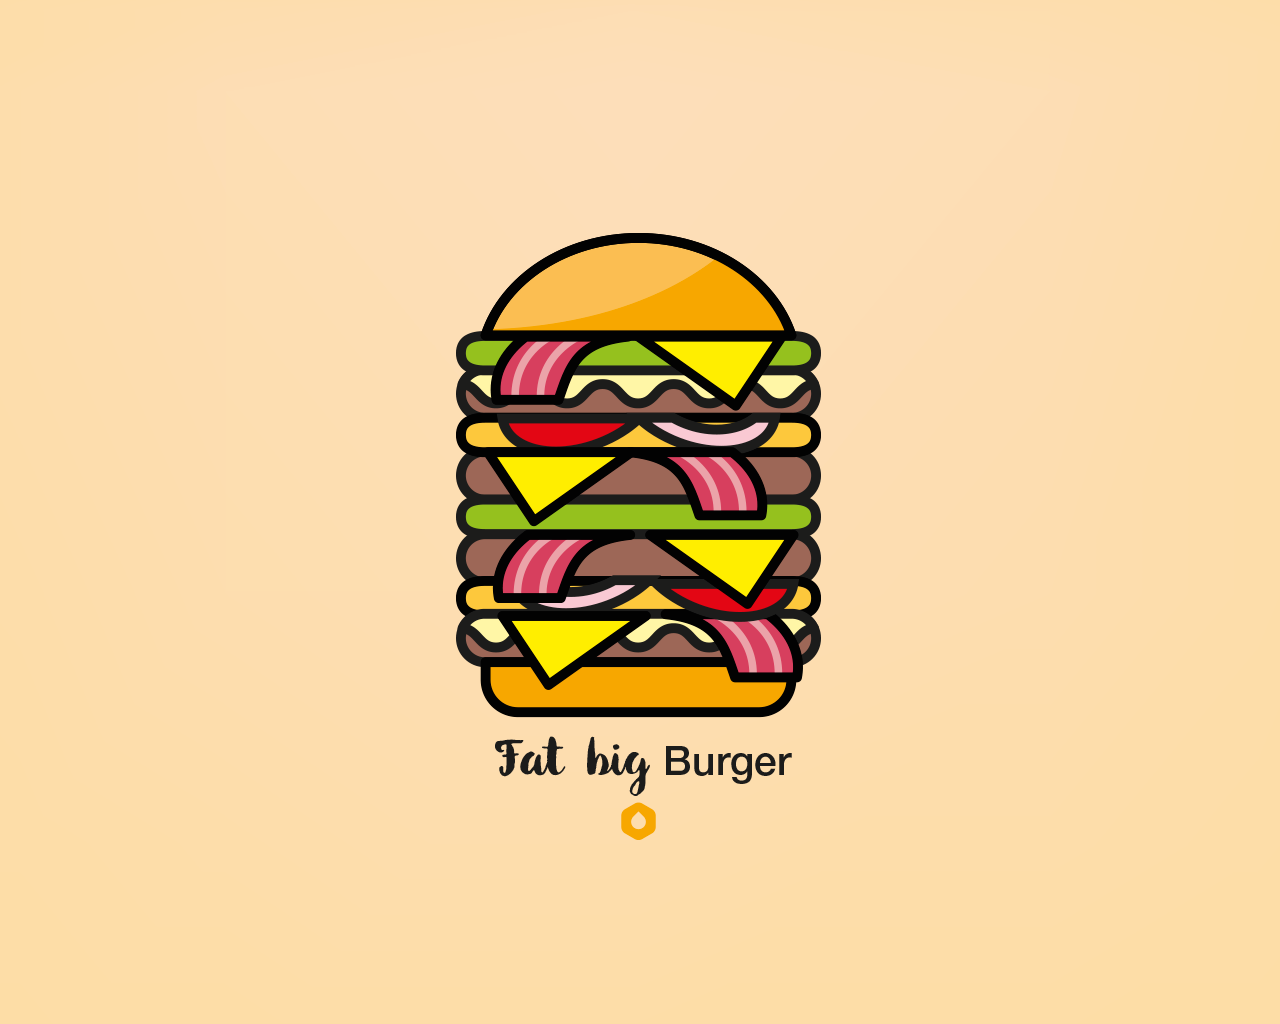 Wallpaper Pick Your Burger - Desktop - FatBig